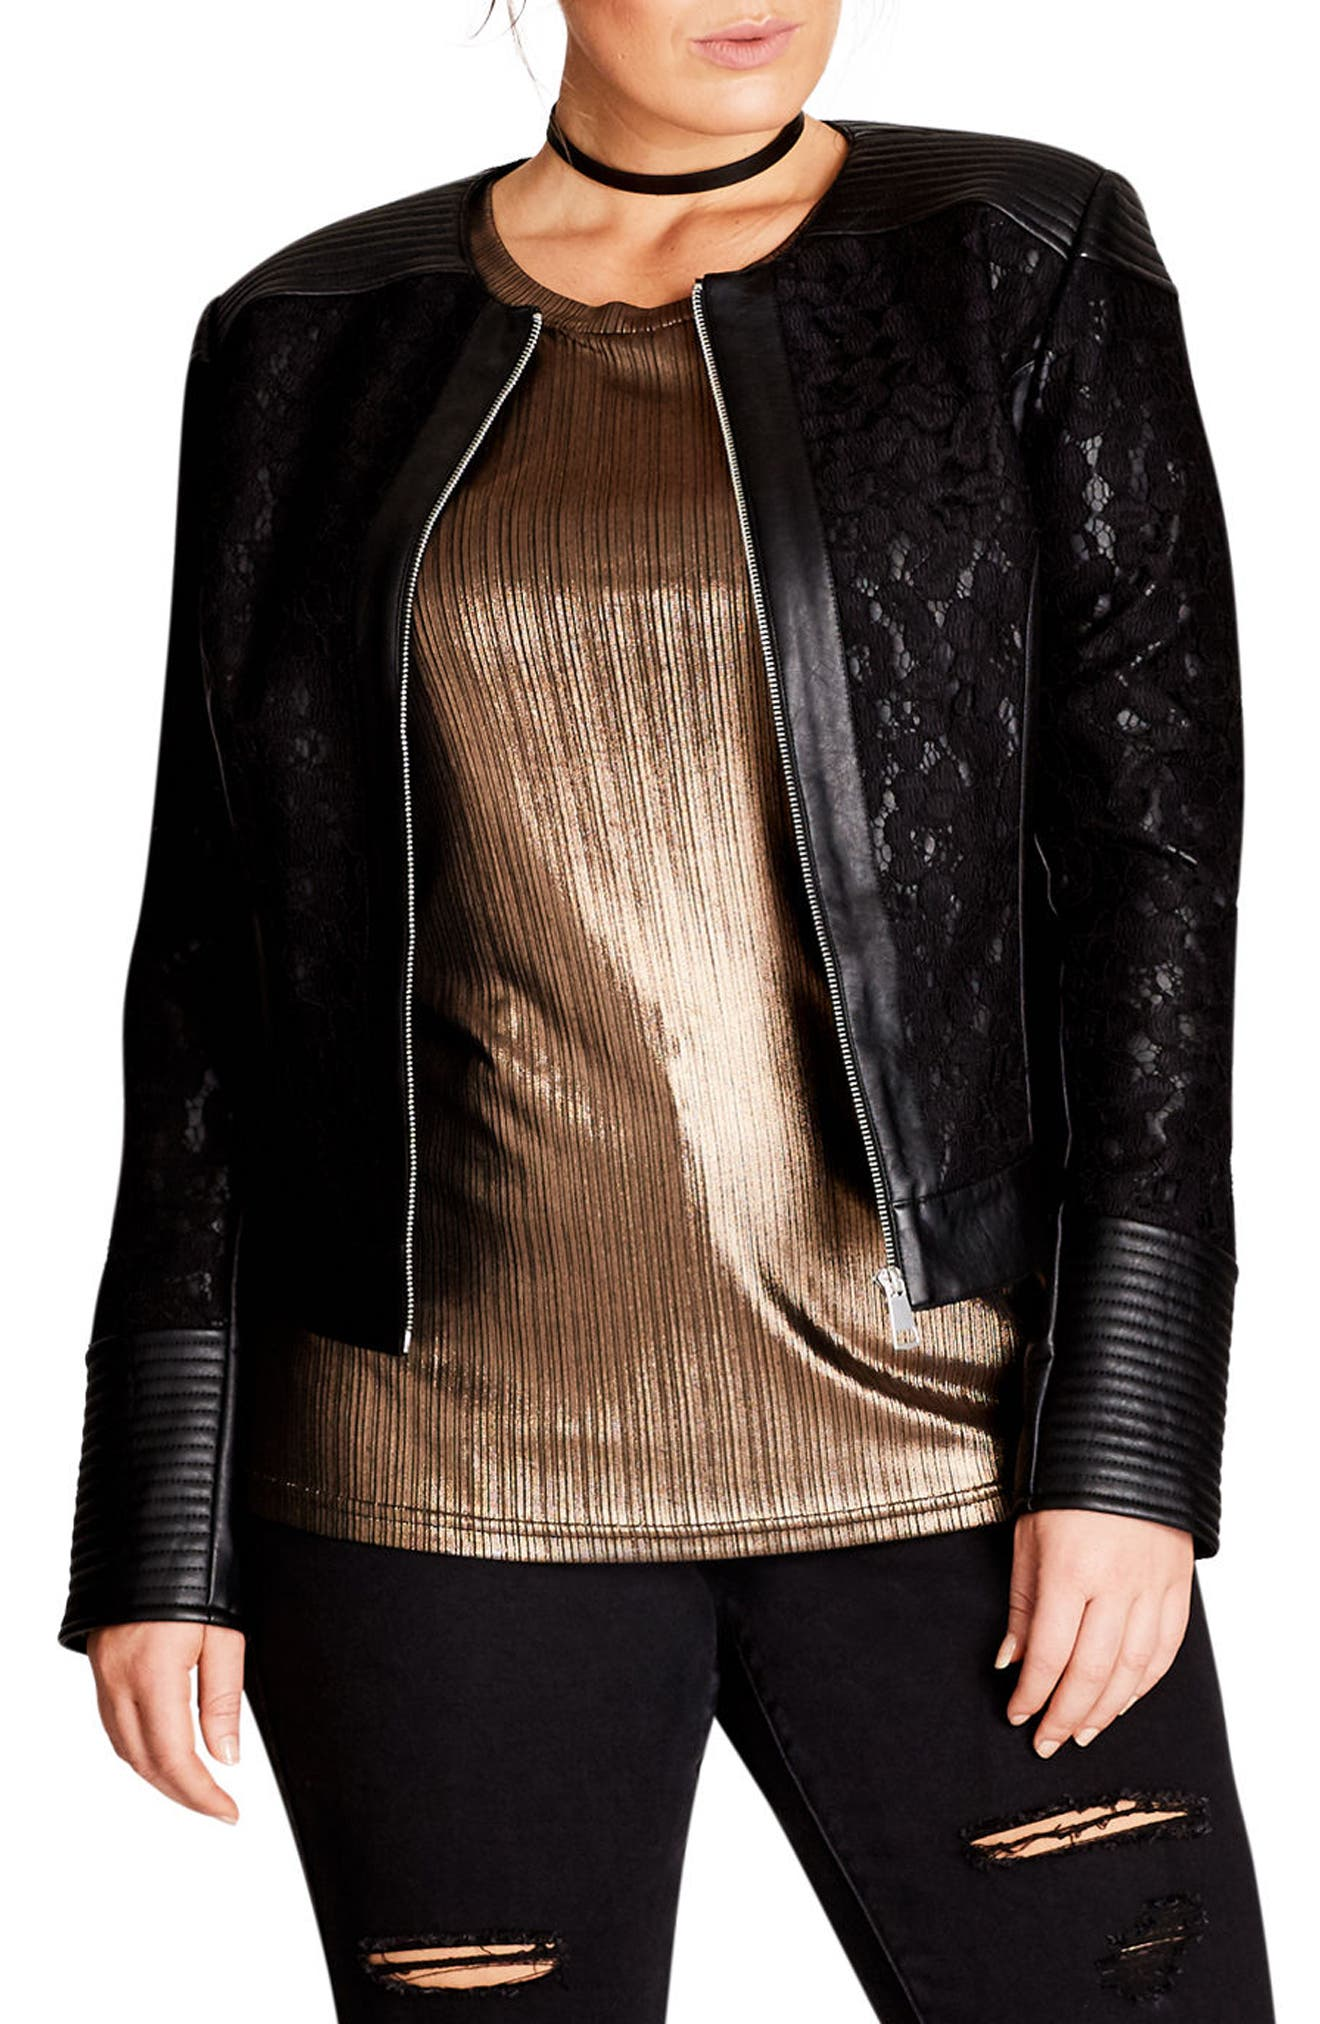 Main Image - City Chic Wild Heart Faux Leather Jacket (Plus Size)